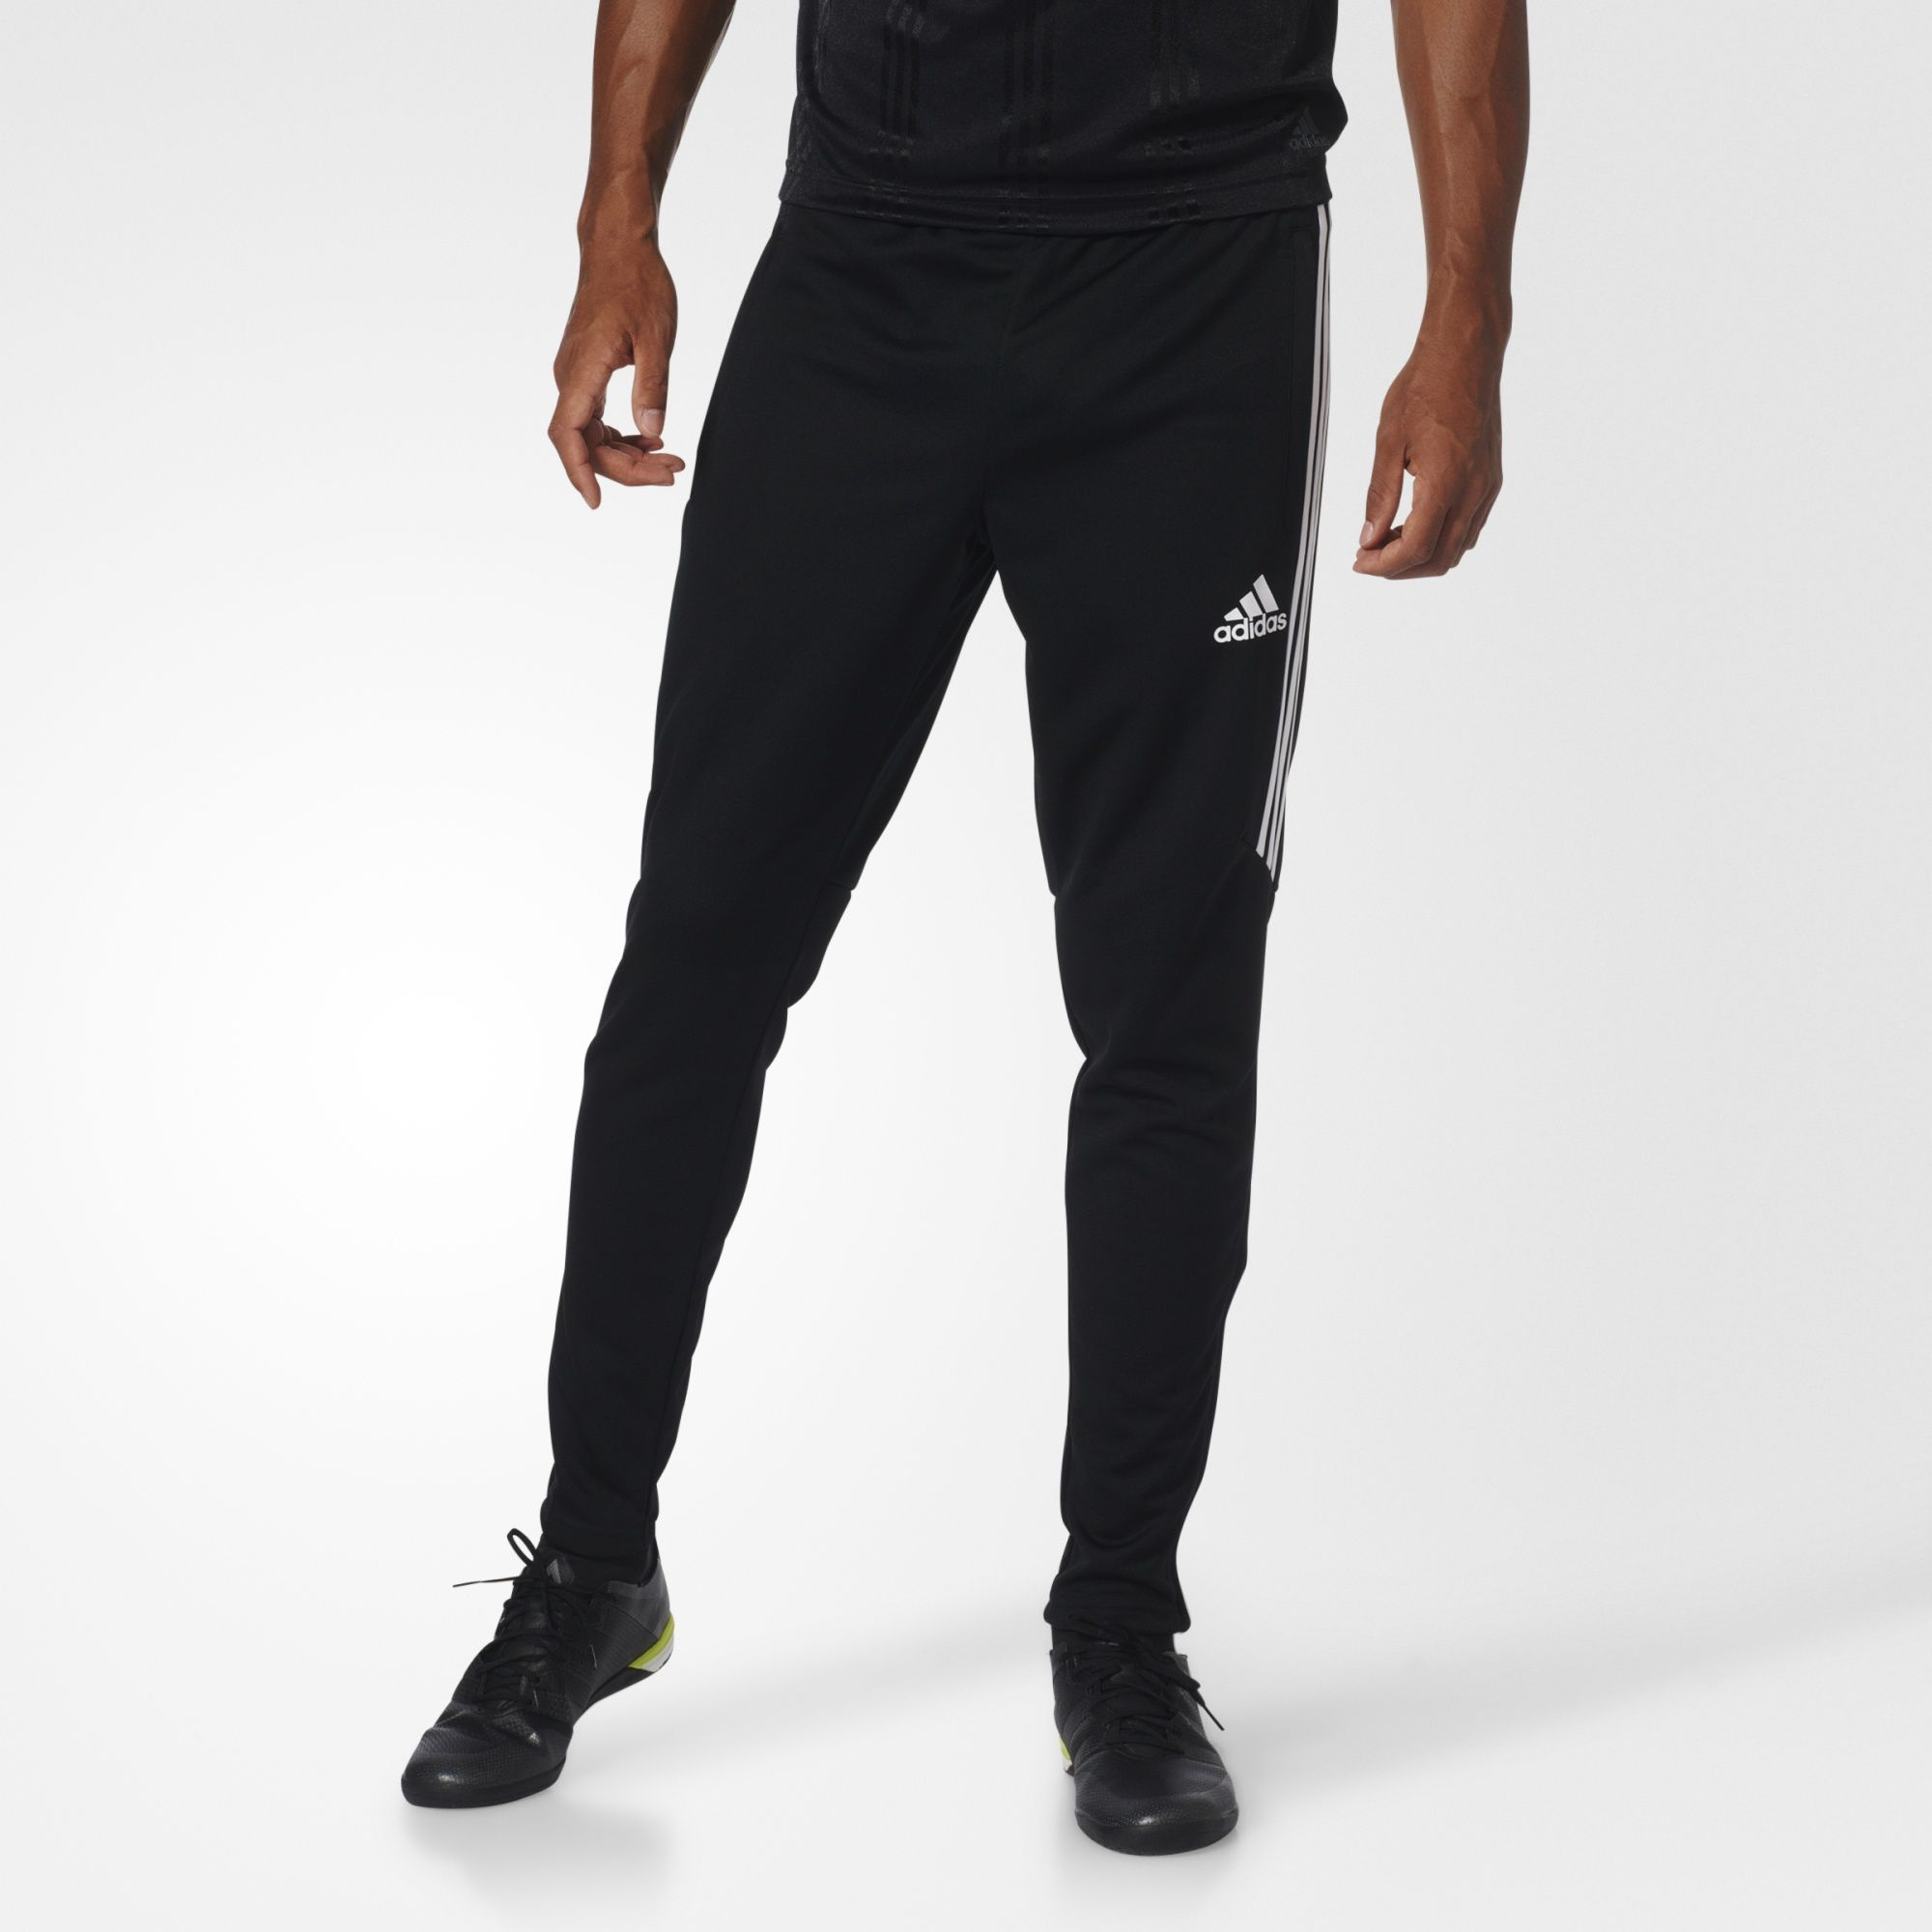 c94d926a1d3f34 adidas - Tiro 17 Training Pants